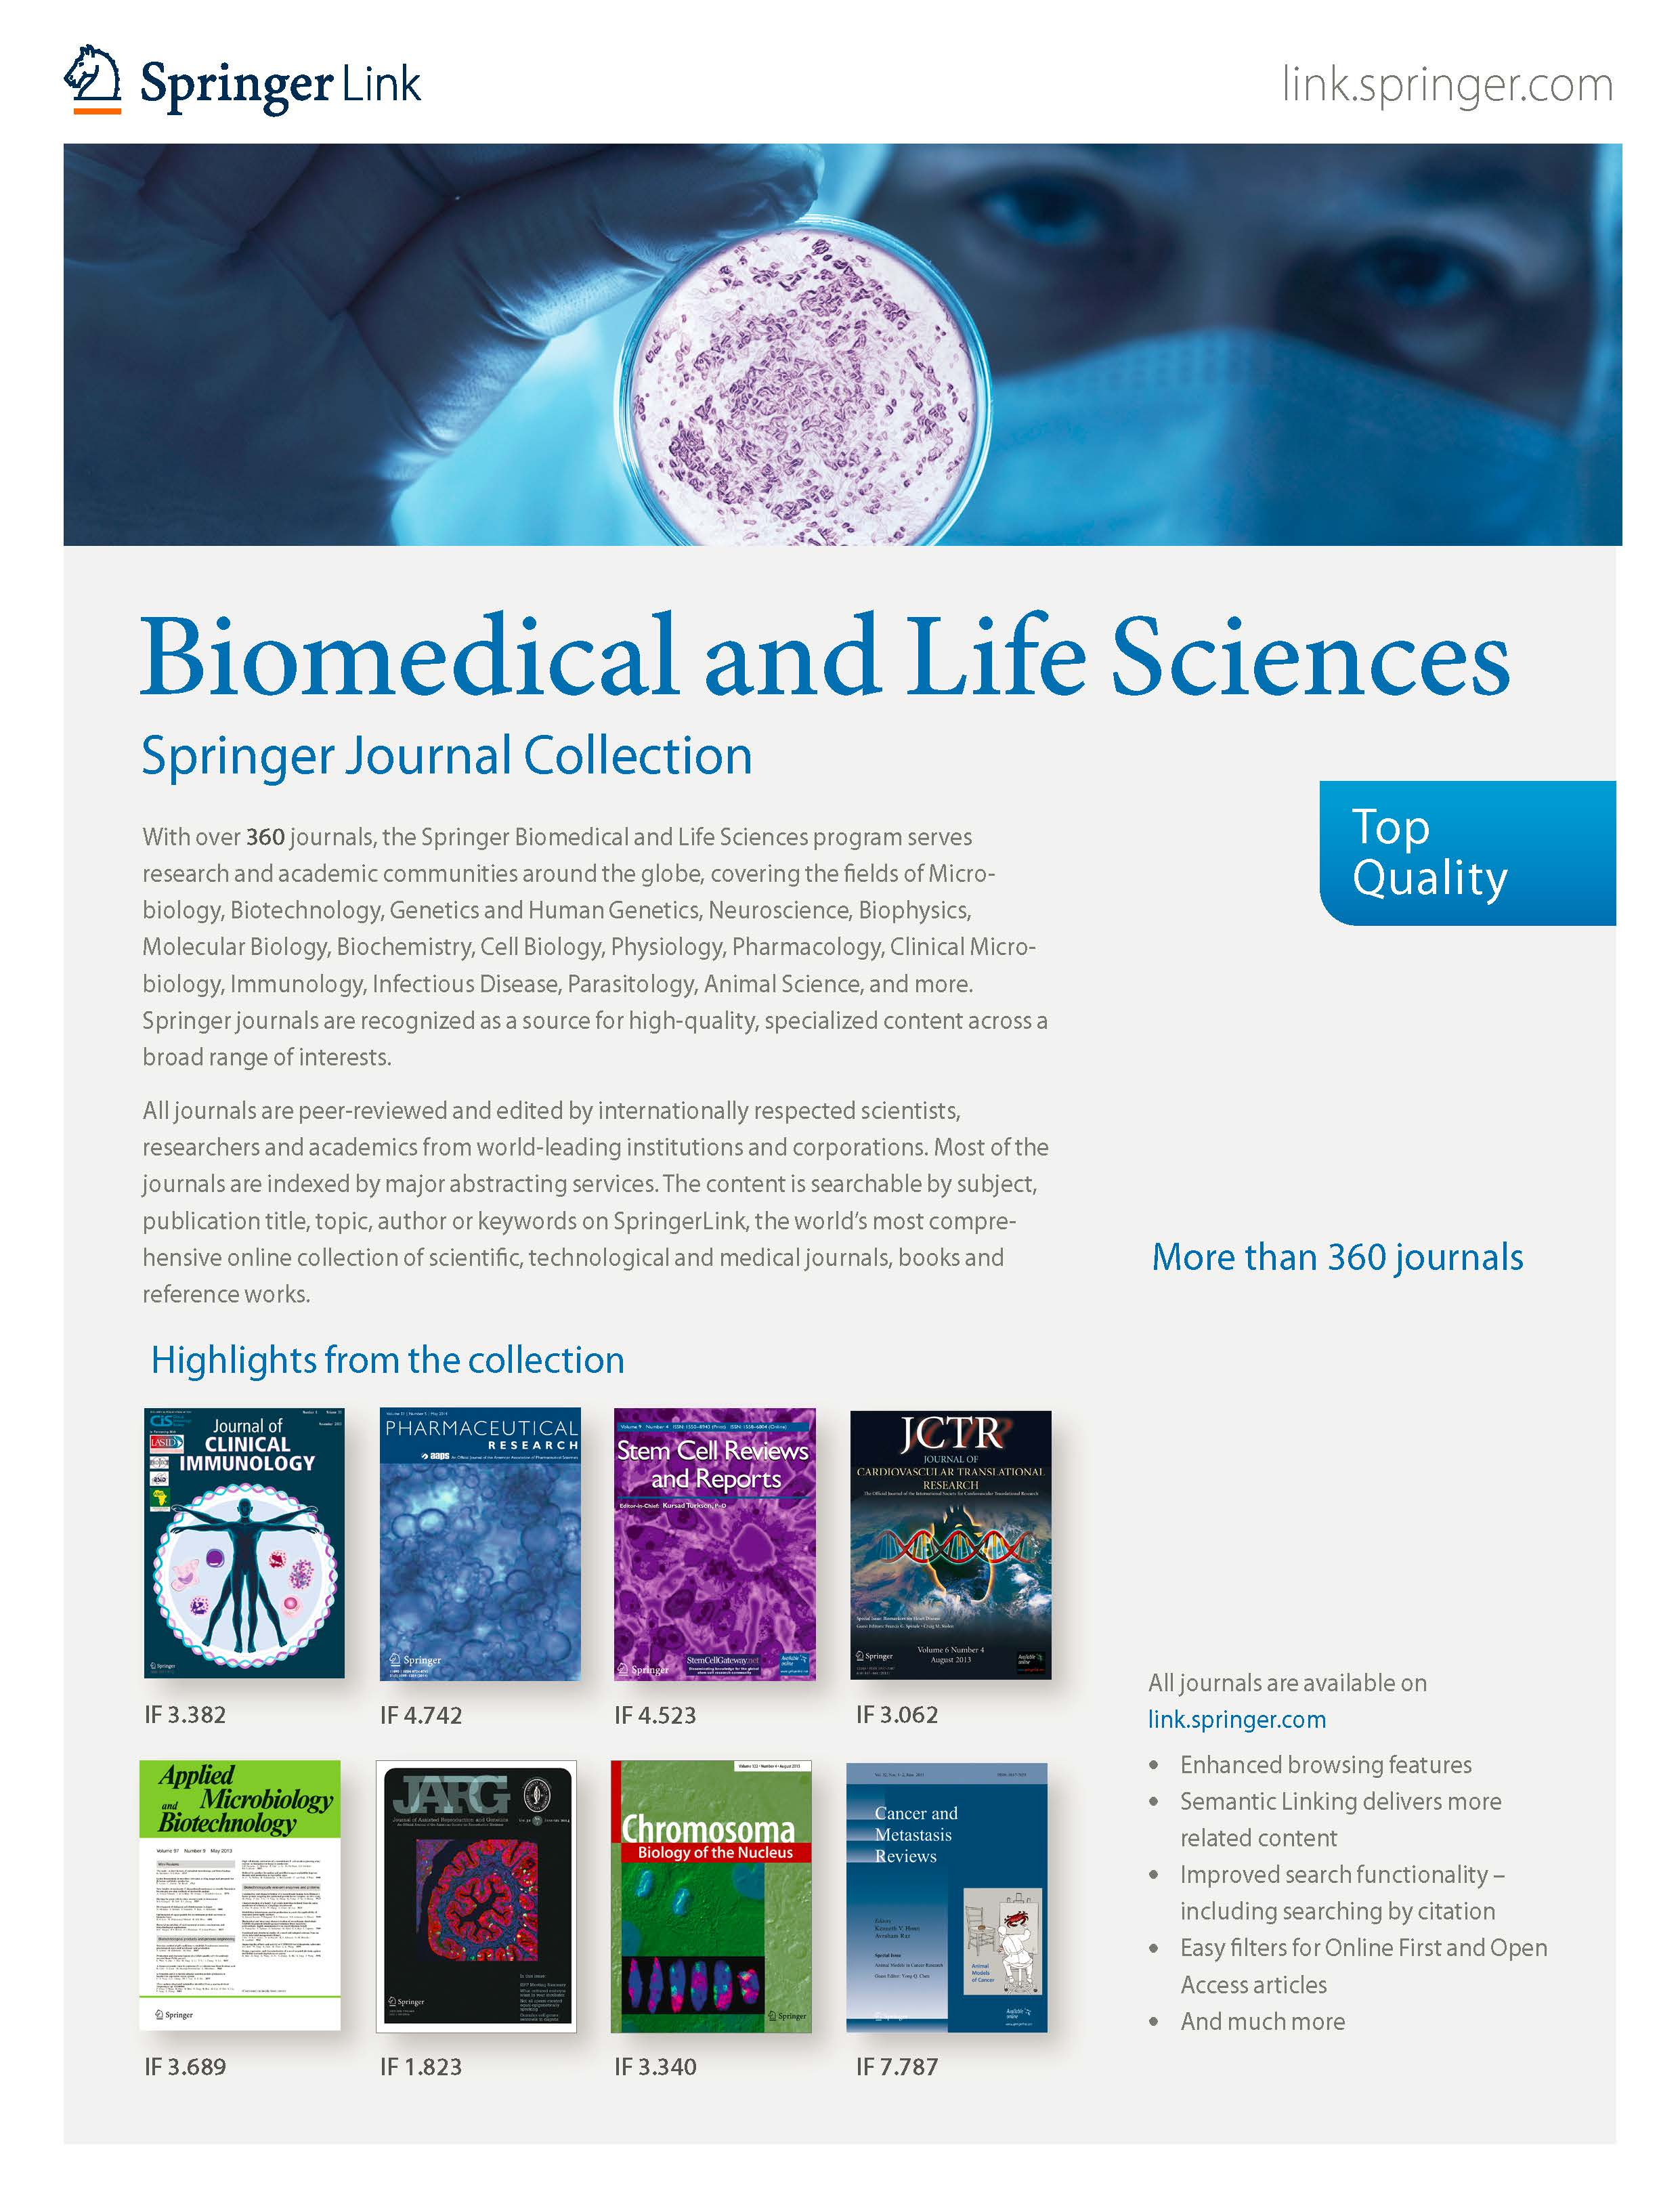 Biomedical & Life Sciences